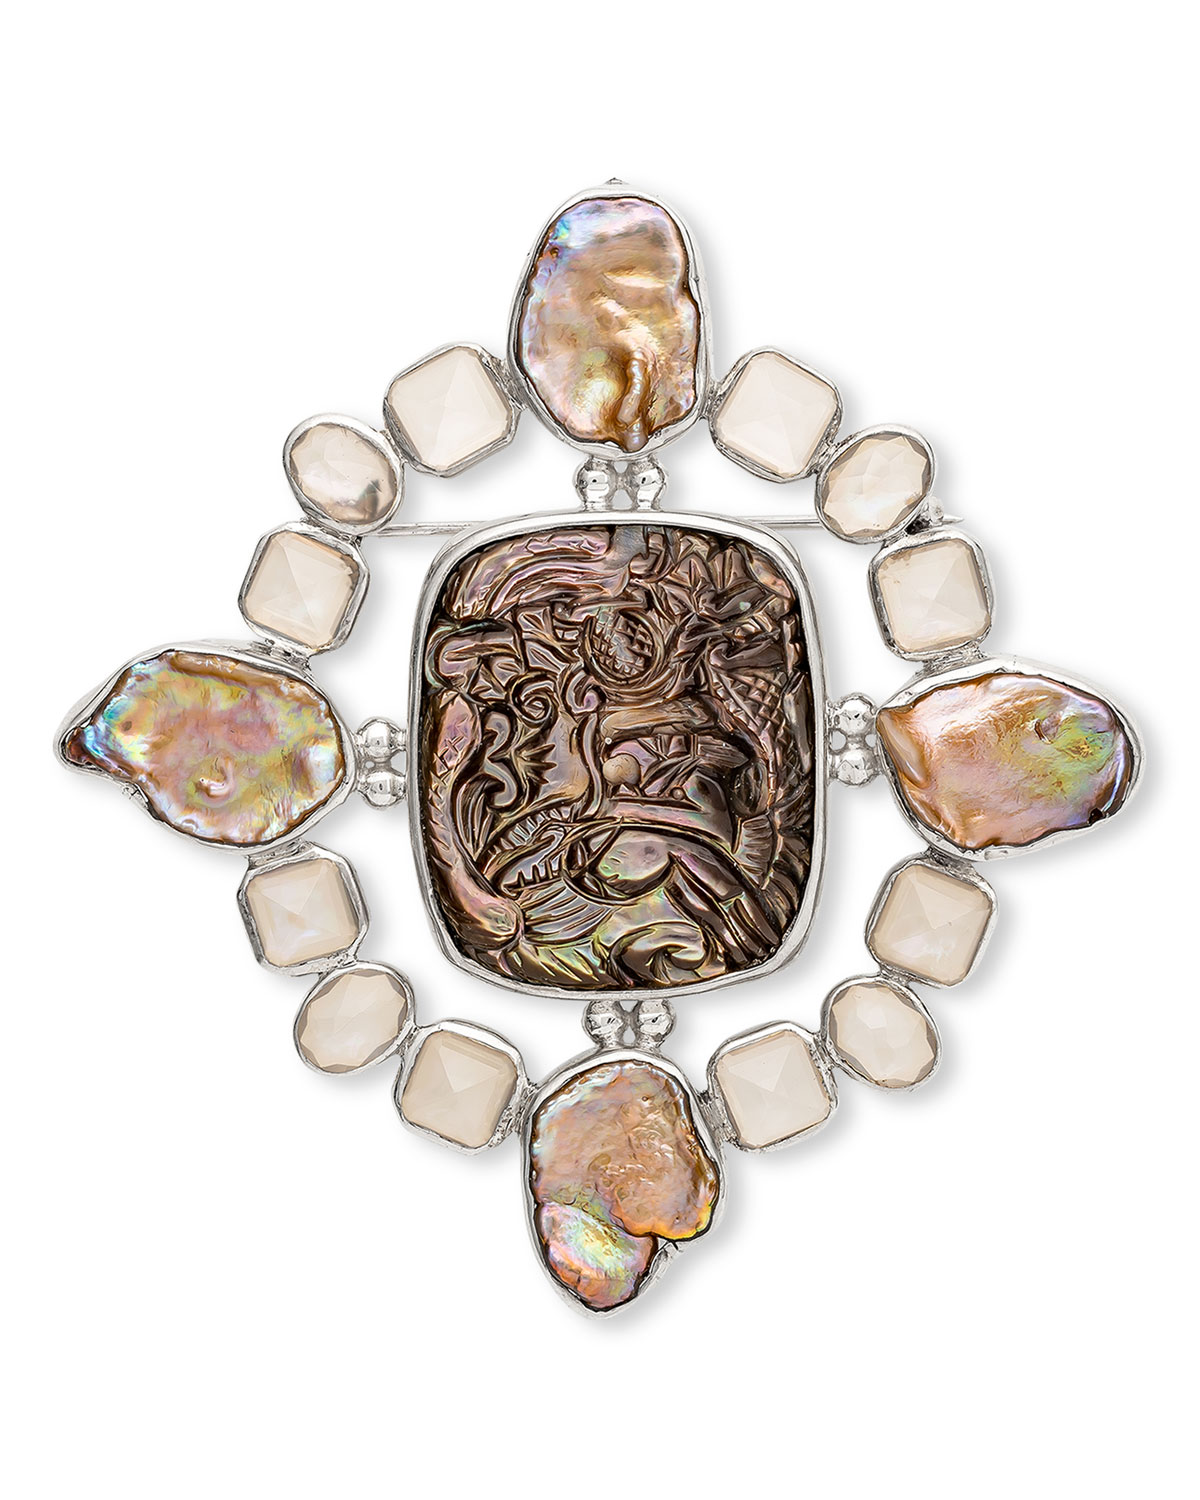 Hand-Carved Mother-of-Pearl Quartz Keshi Pearl Brooch